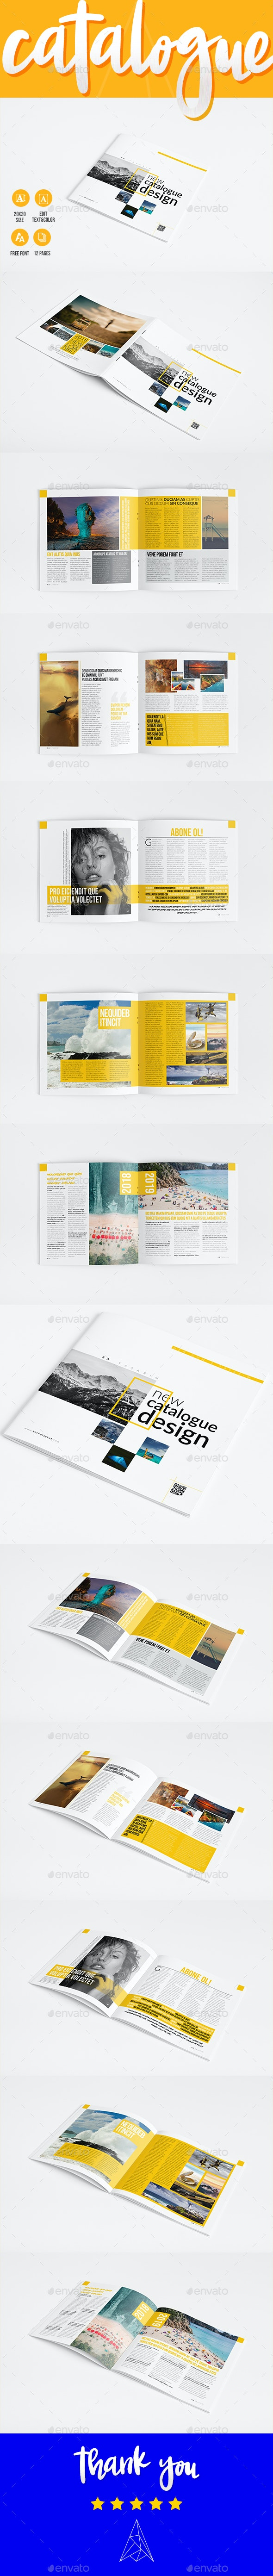 New Catalogue Template 12 Pages - Catalogs Brochures